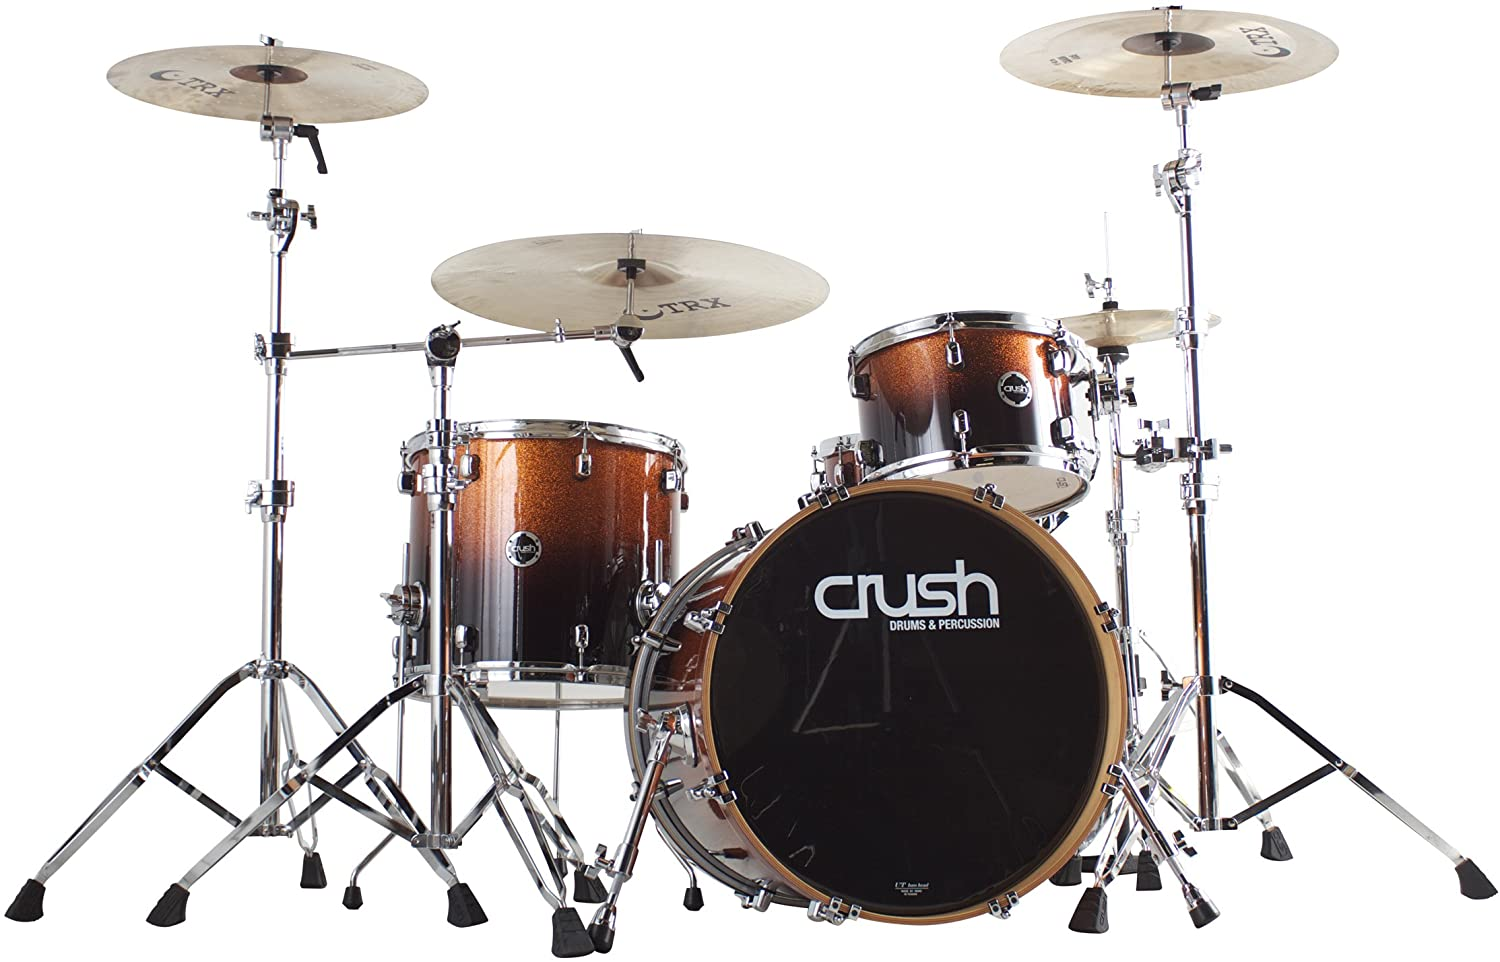 Crush Drums & Percussion S3M428-701 4-Piece Drum Shell Pack, Copper Sparkle Fade